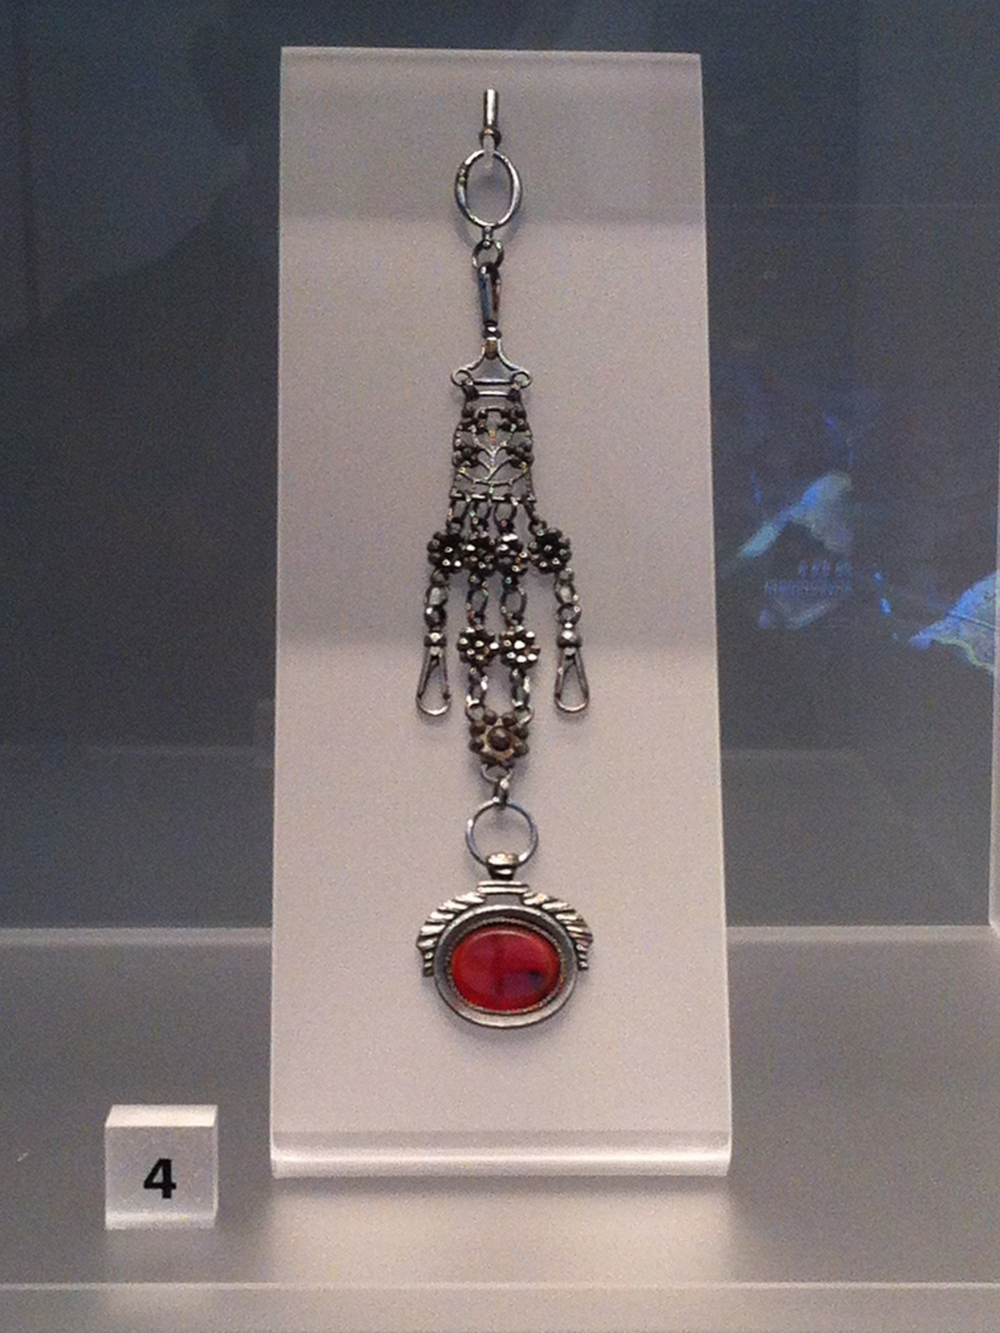 18th Cent. Ladies Steel Chatelaine for holding keys/other household items